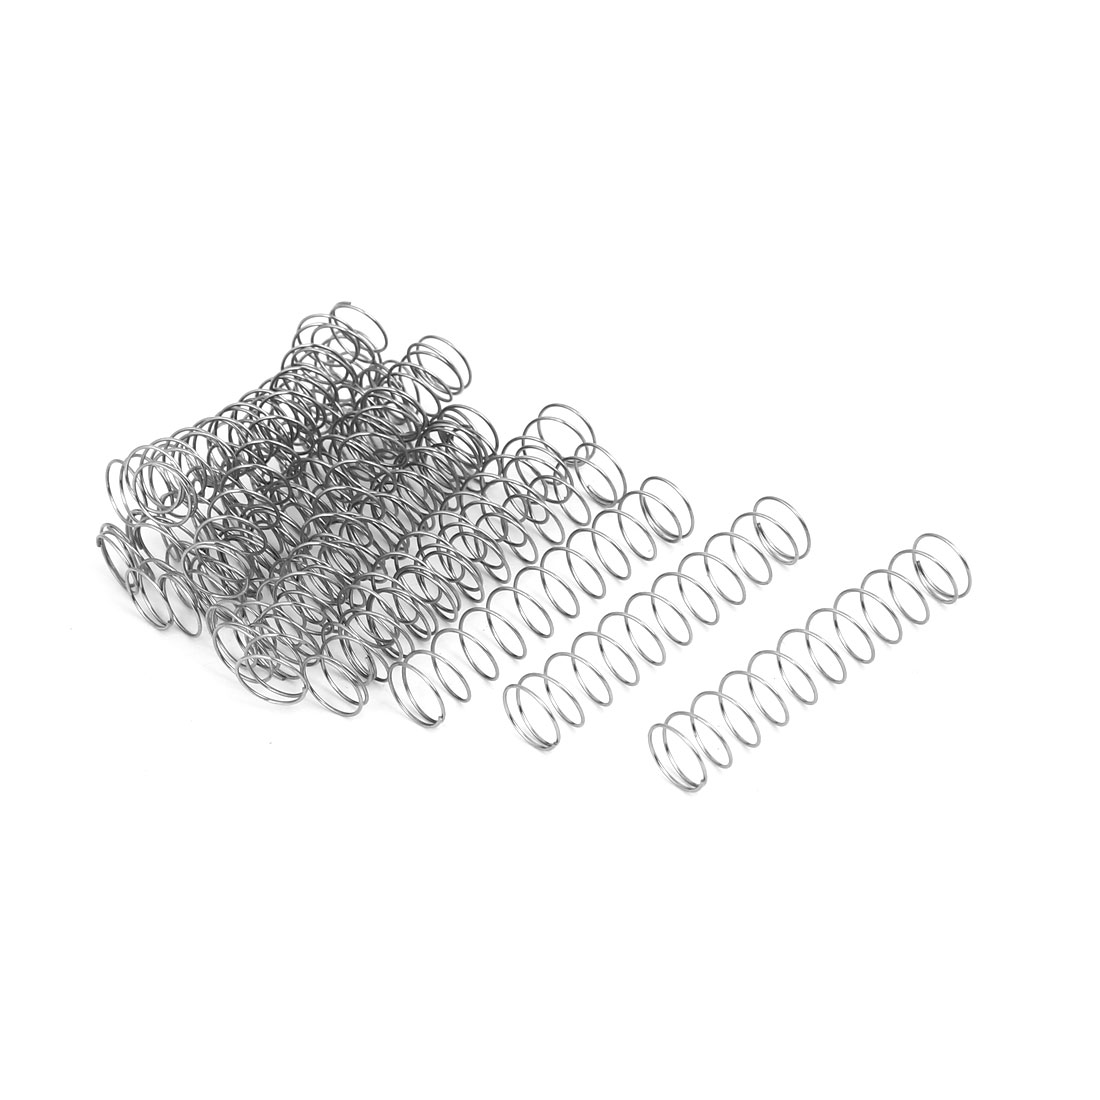 0.5mmx9mmx45mm 304 Stainless Steel Compression Springs Silver Tone 20pcs - image 3 de 3